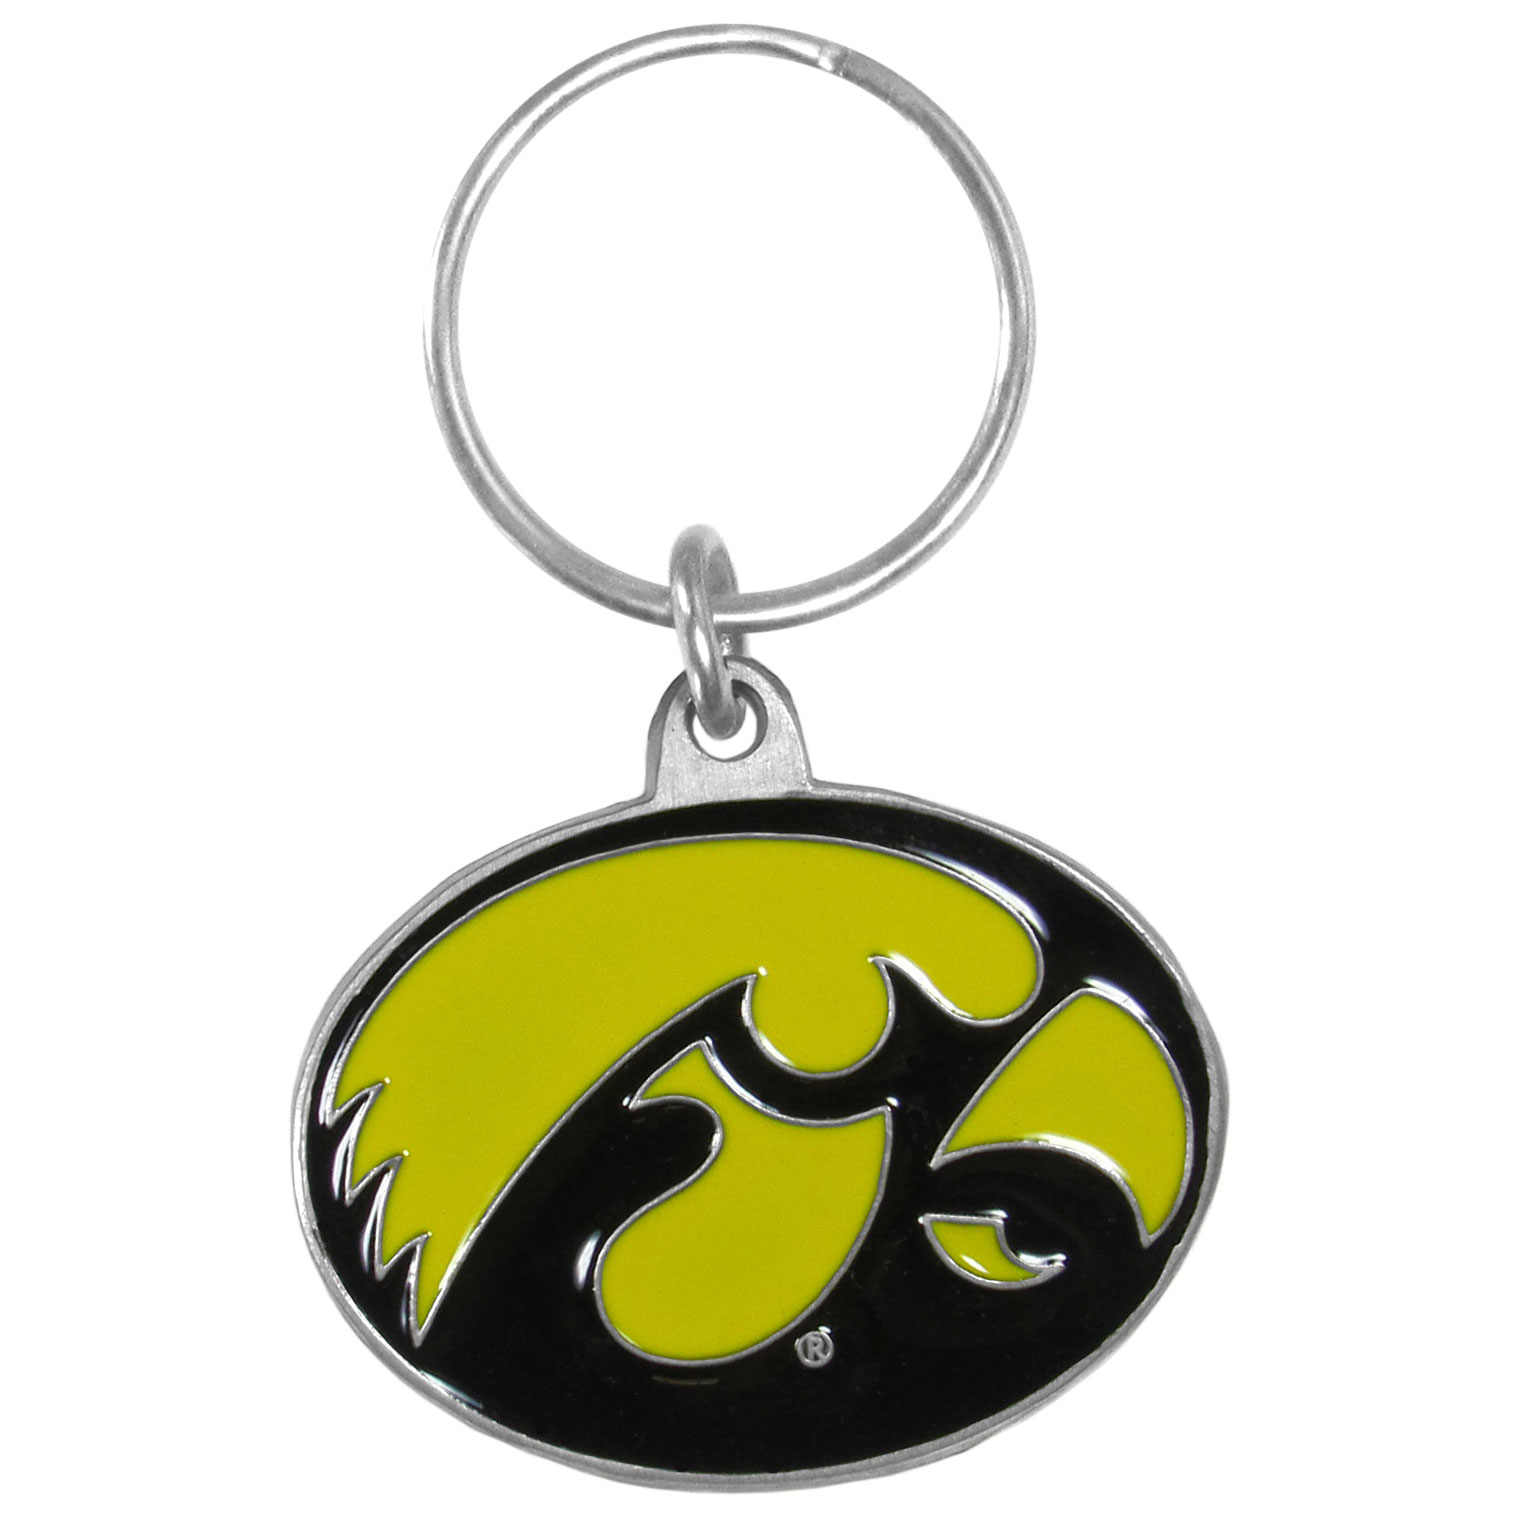 Iowa Hawkeyes Carved Metal Key Chain - Our fully cast, metal Iowa Hawkeyes key chain has intricate detail and expertly enameled color.